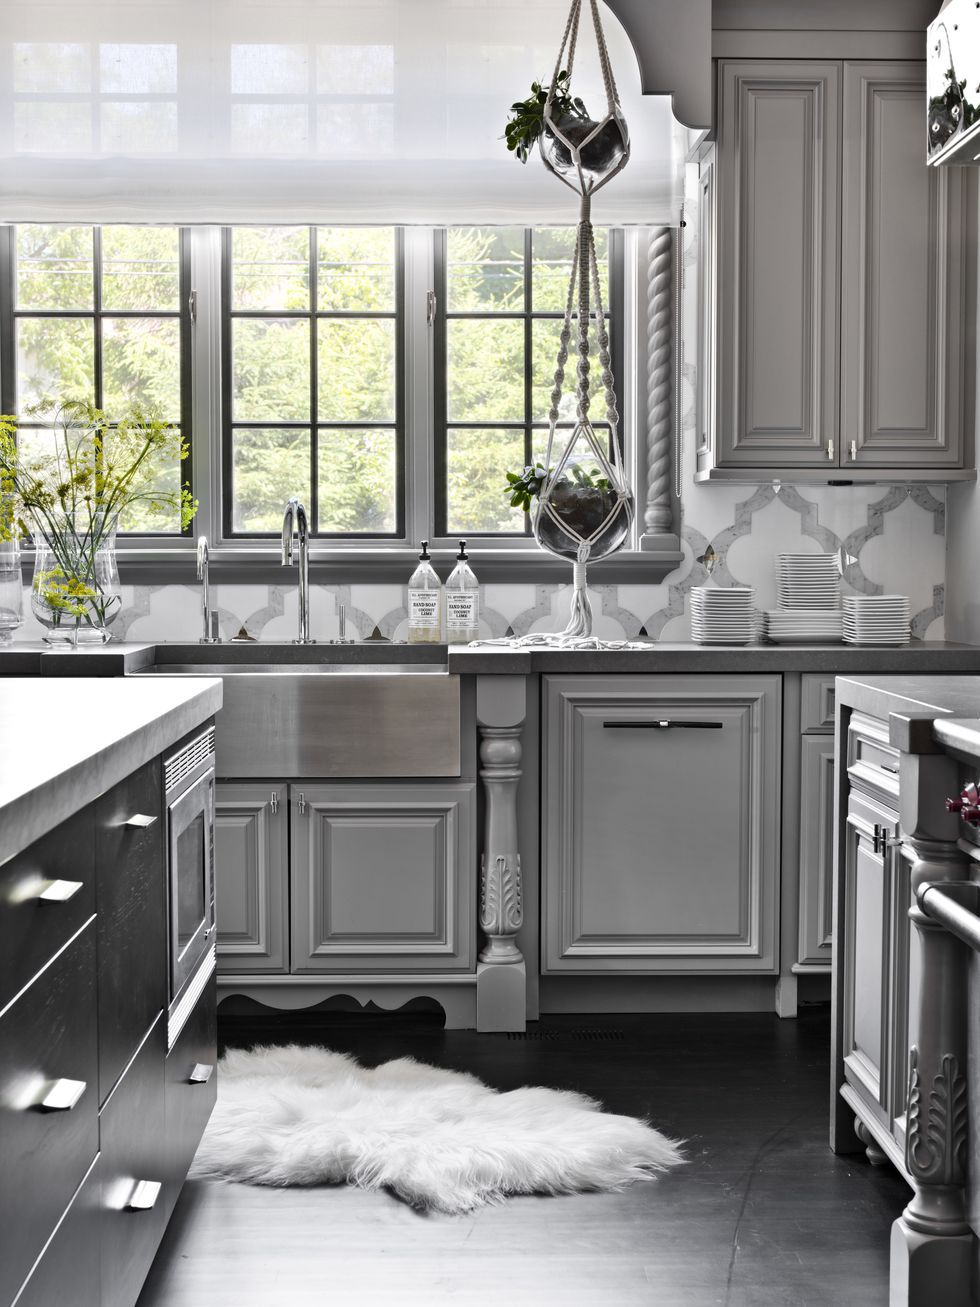 Best Kitchen Backsplash Ideas Savillefurniture